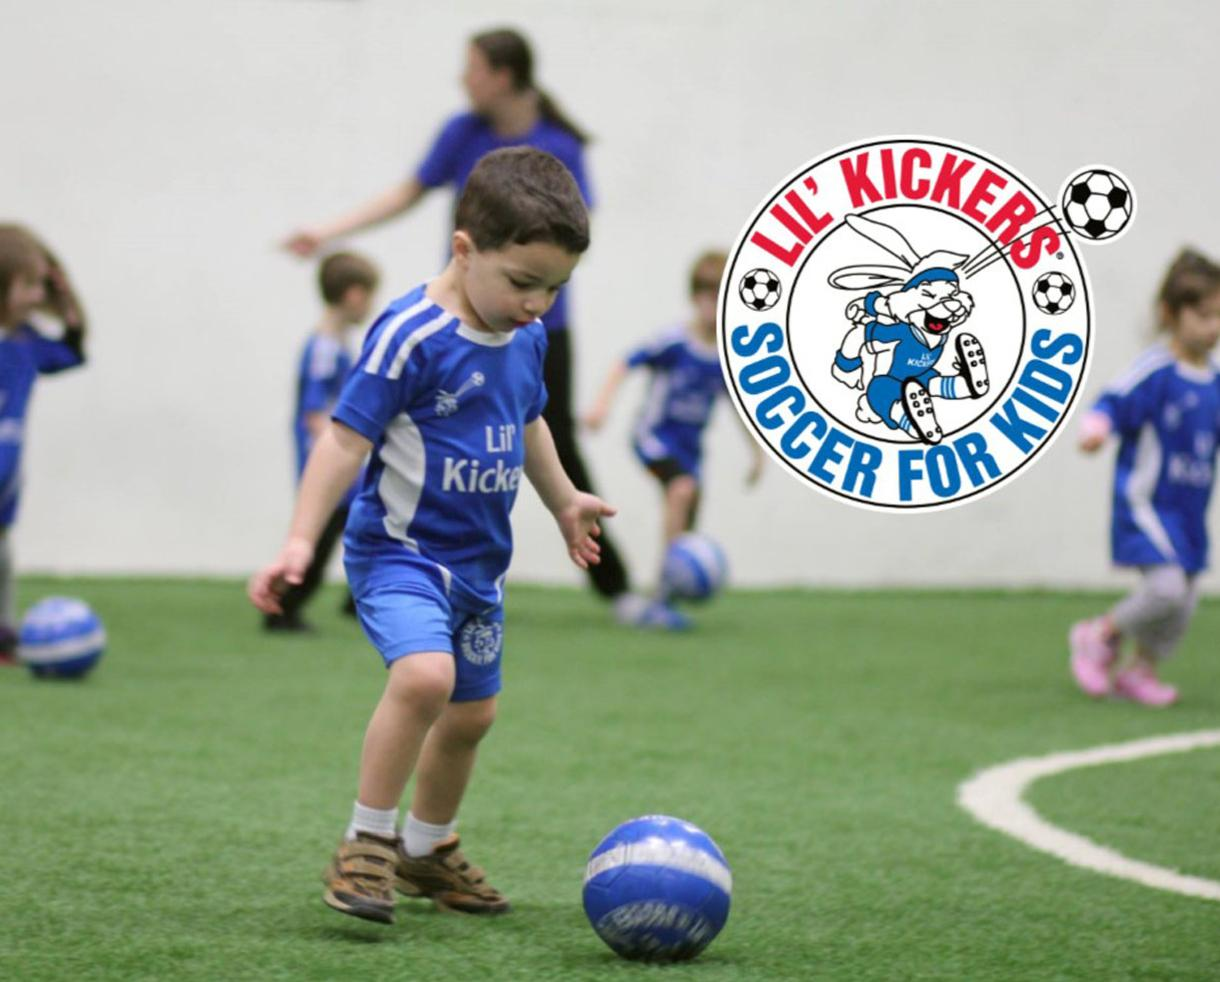 $43 for Lil Kickers 4-Week Soccer Session for Ages 18 mos-9 Years - Fairfax, Herndon, Chantilly, and McLean ($72 Value - 41% Off)